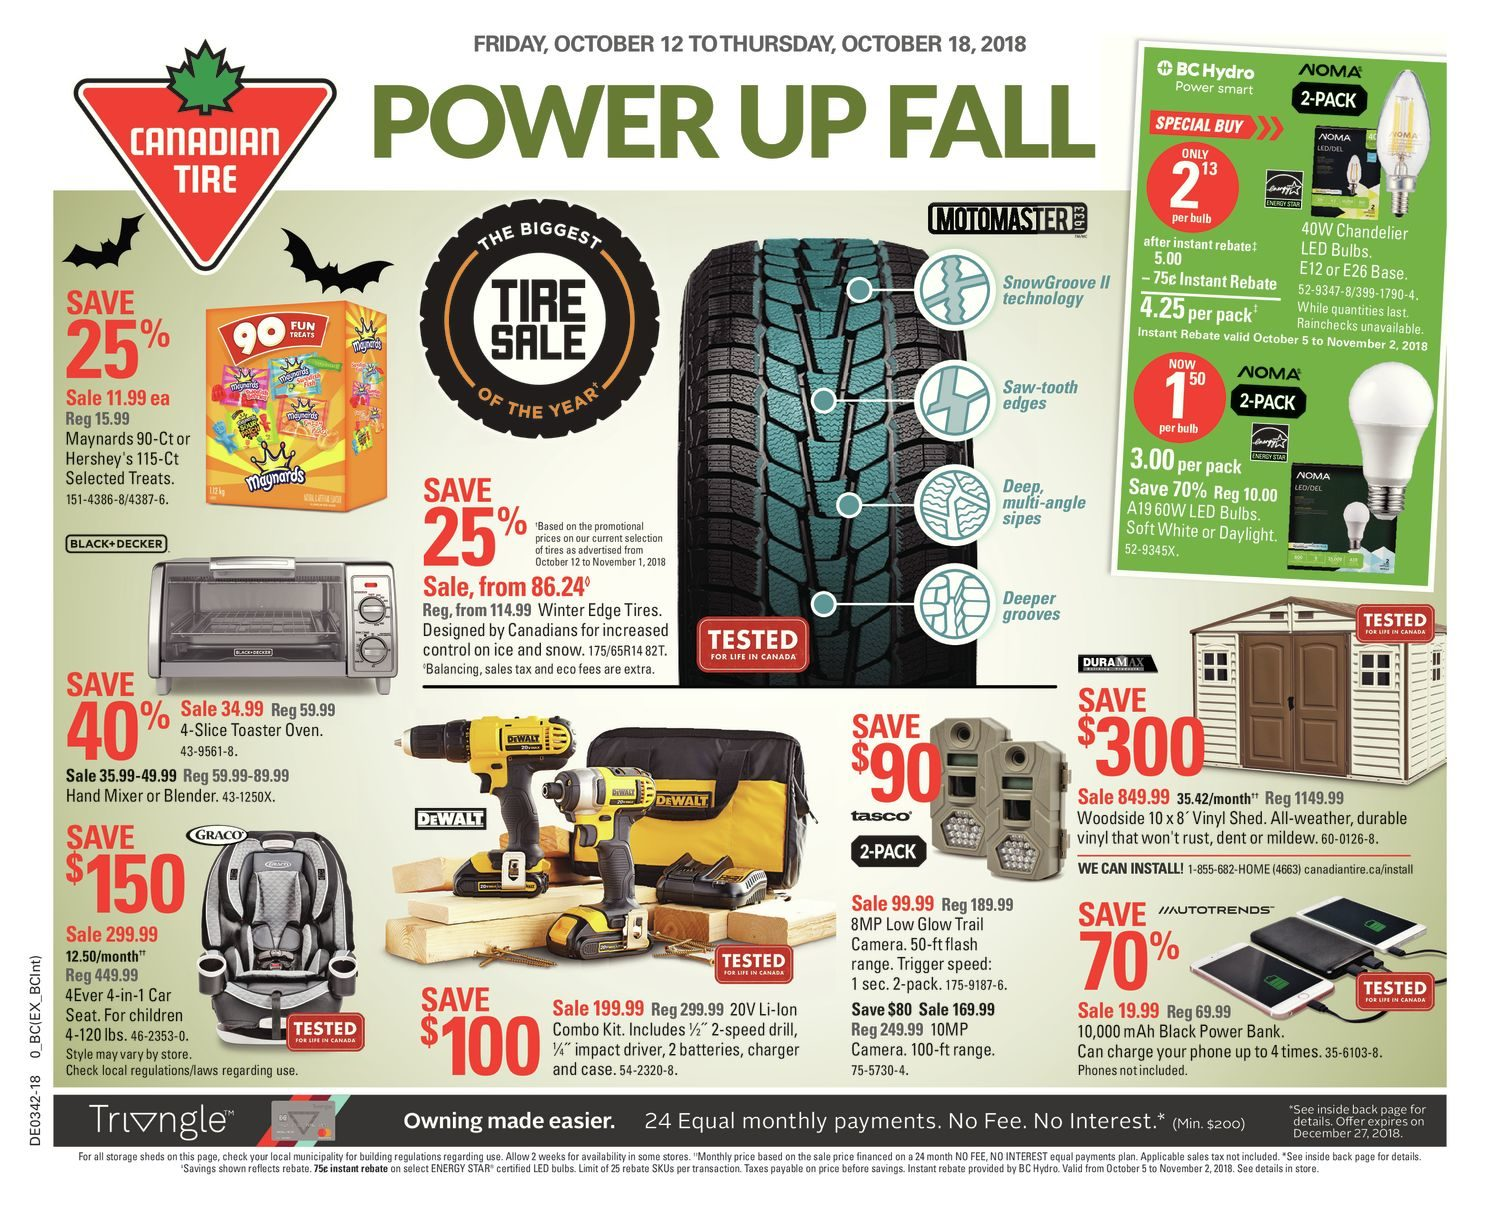 Weekly Power Up Fall Canadian Tire October 11 2018 Yp Shopwise